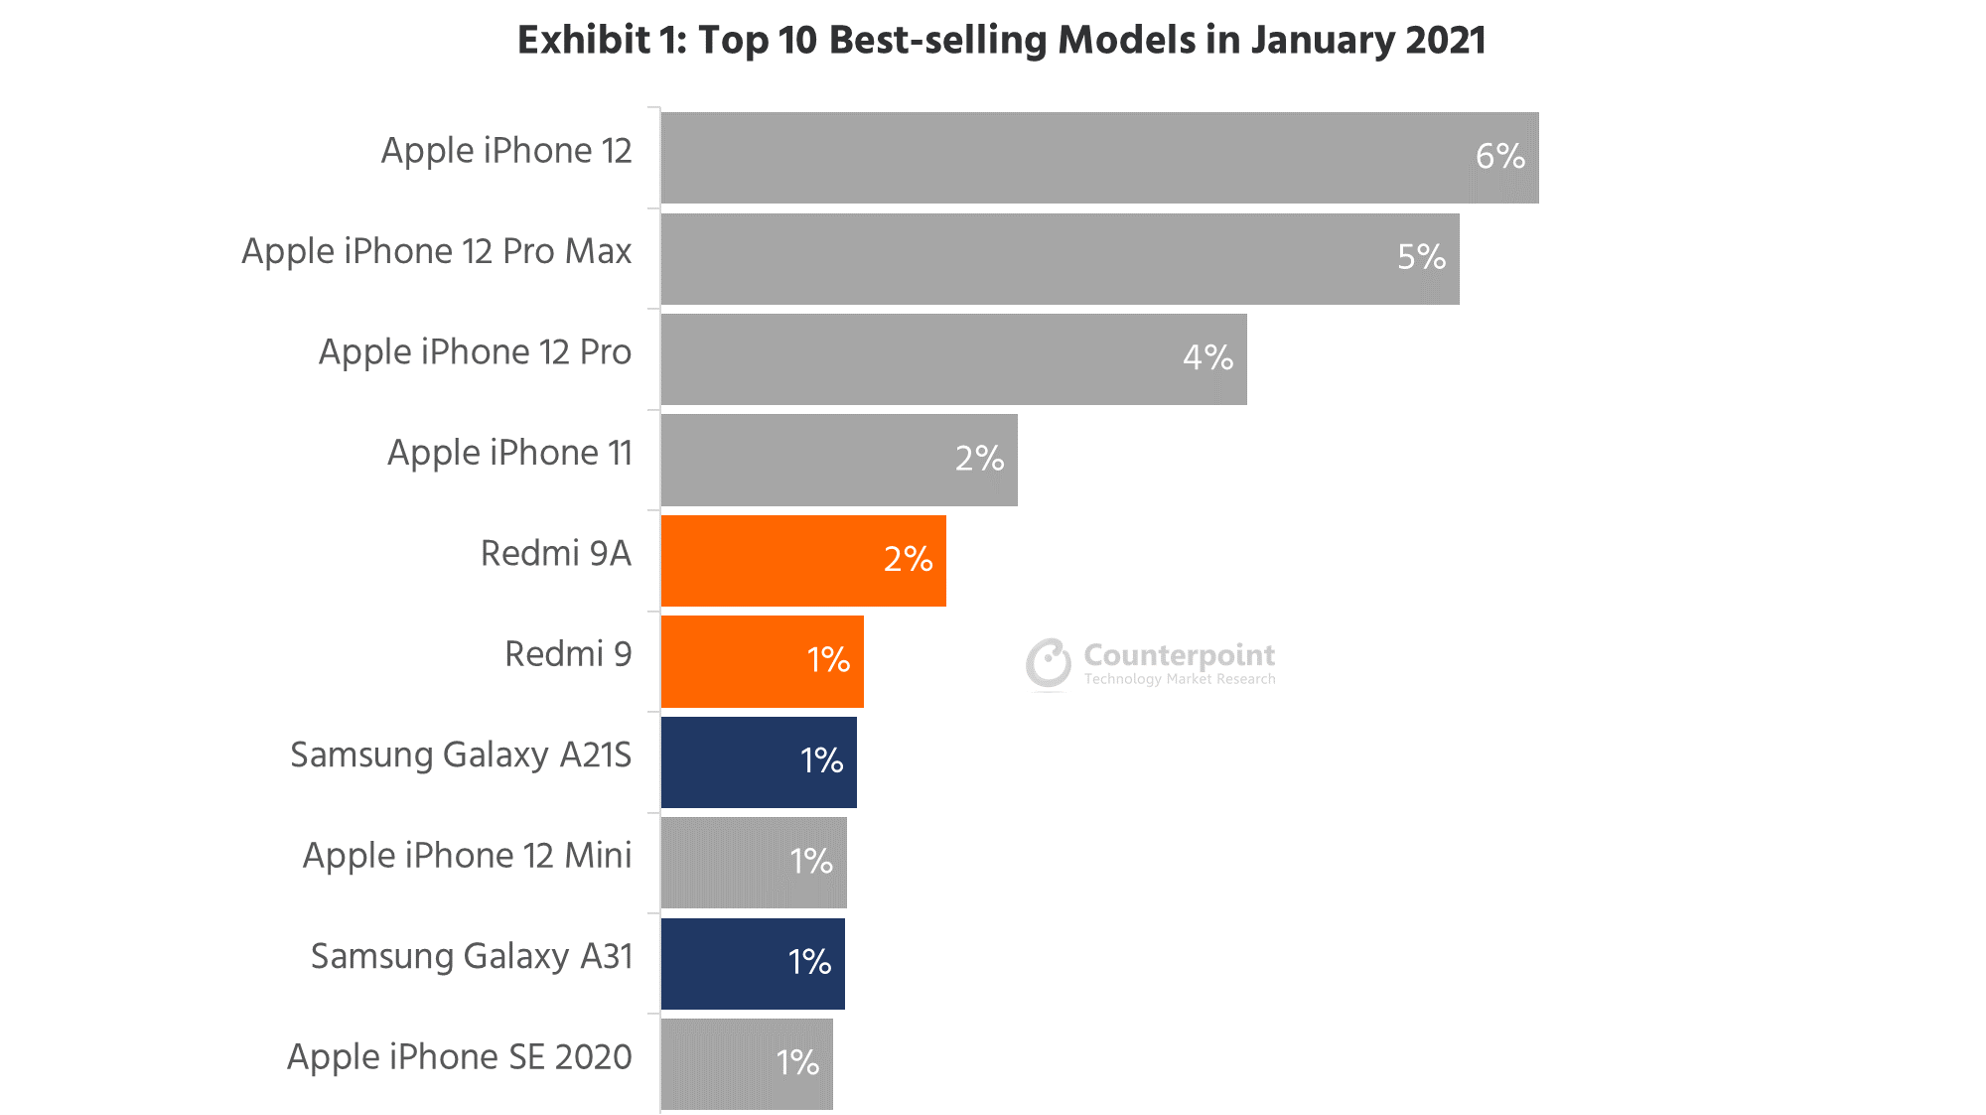 Counterpoint Research Top 10 Best-selling Smartphone Models in January 2021